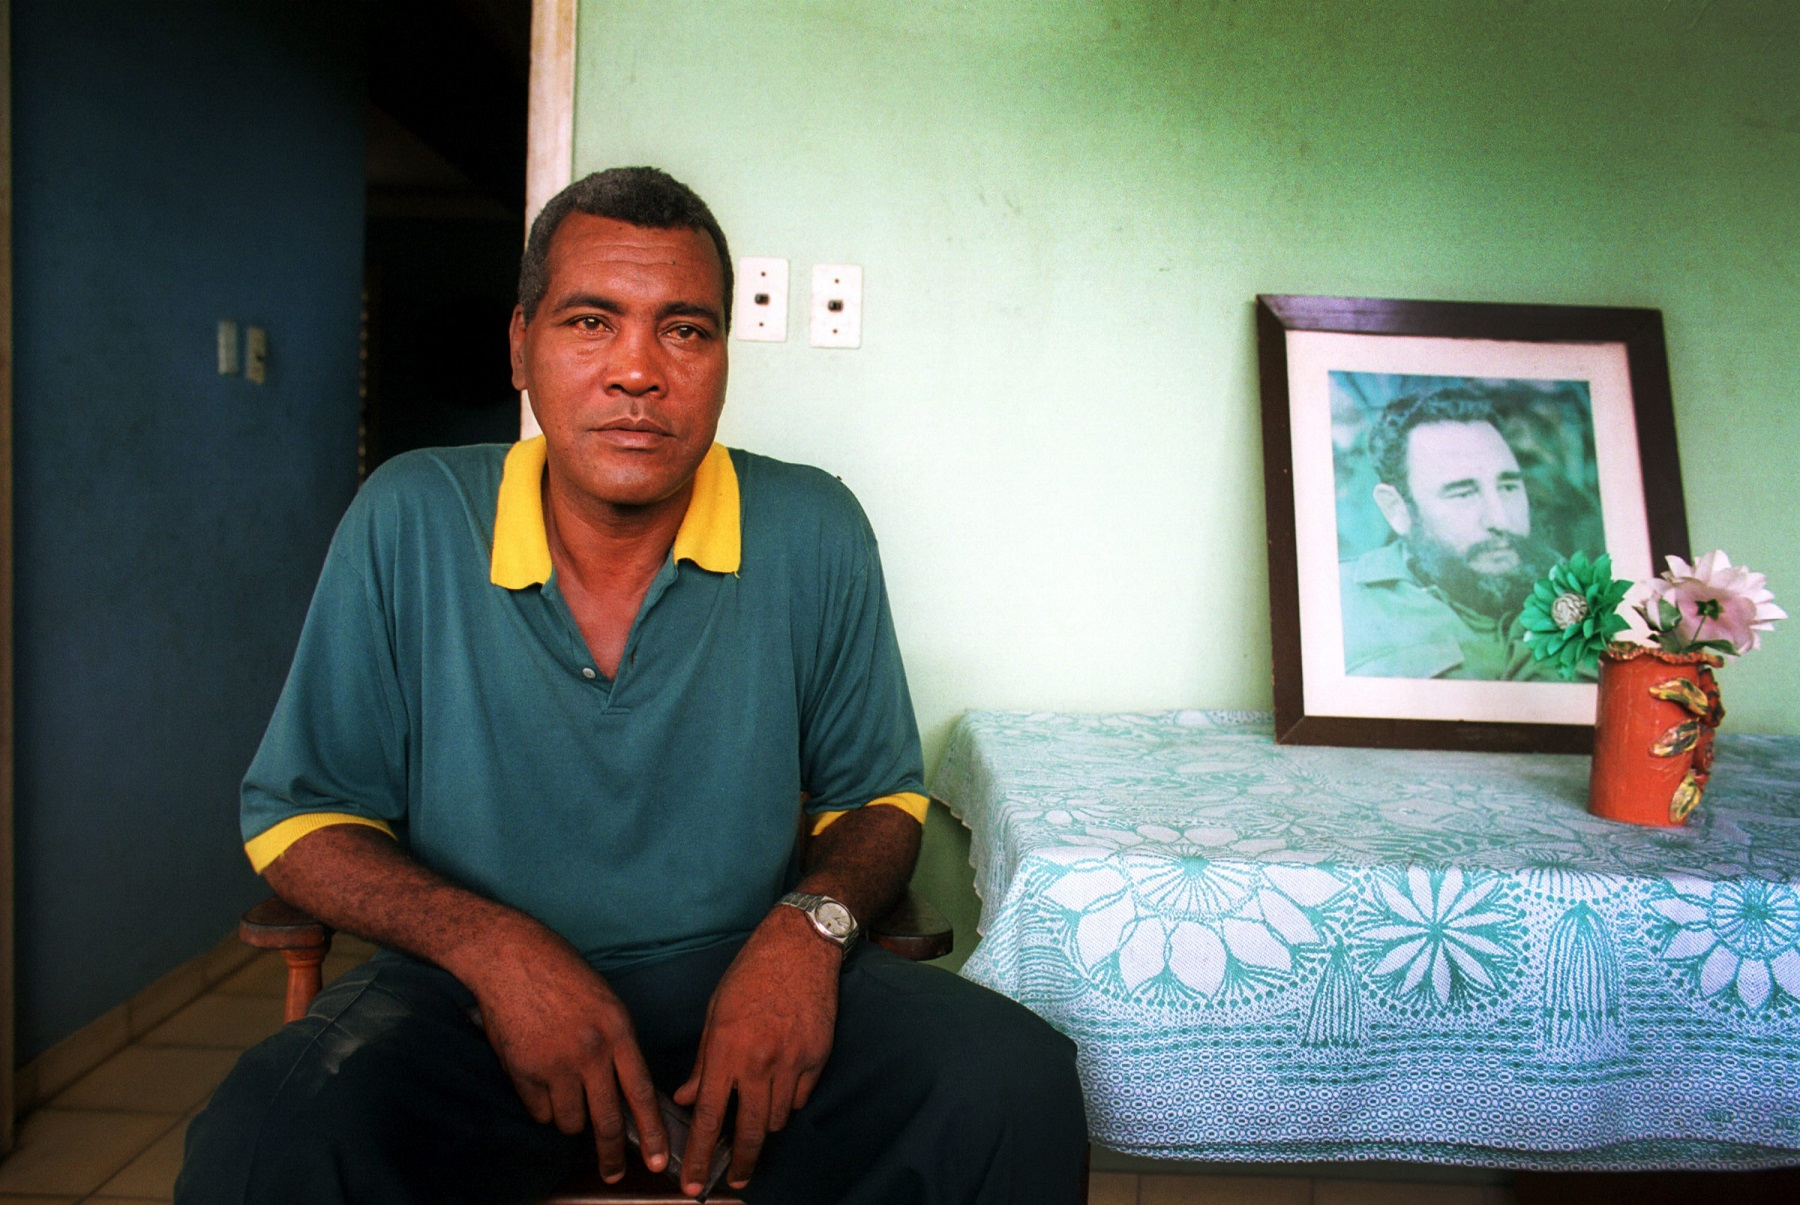 DELICIAS, CUBA - JULY 30: Cuba's boxing legend Teofilo Stevenson sits next to a photo of Cuba's Revolution leader Fidel Castro in his home in Delicias on July 30, 2000, in the eastern province Las Tunas, Cuba. Stevenson, who won 3 Olympic Gold medals and was 3 times World Champion, died of heart attack at the age of 60 on June 11, 2012, in Havana, Cuba. (Photo by Sven Creutzmann/Mambo photo/Getty Images)